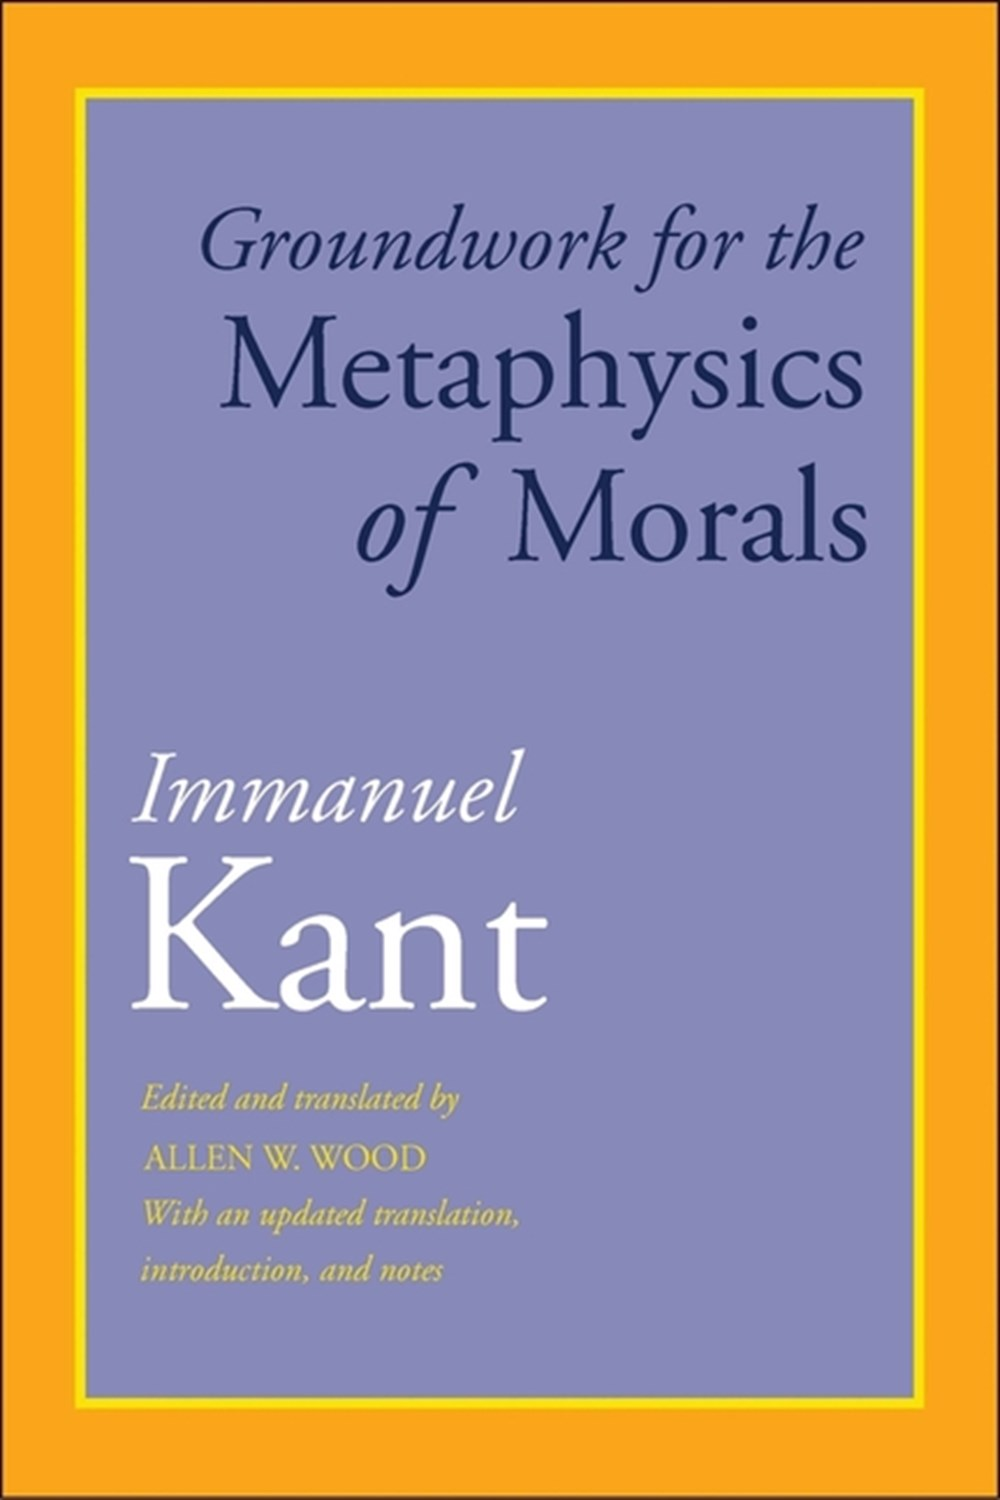 Groundwork for the Metaphysics of Morals With an Updated Translation, Introduction, and Notes